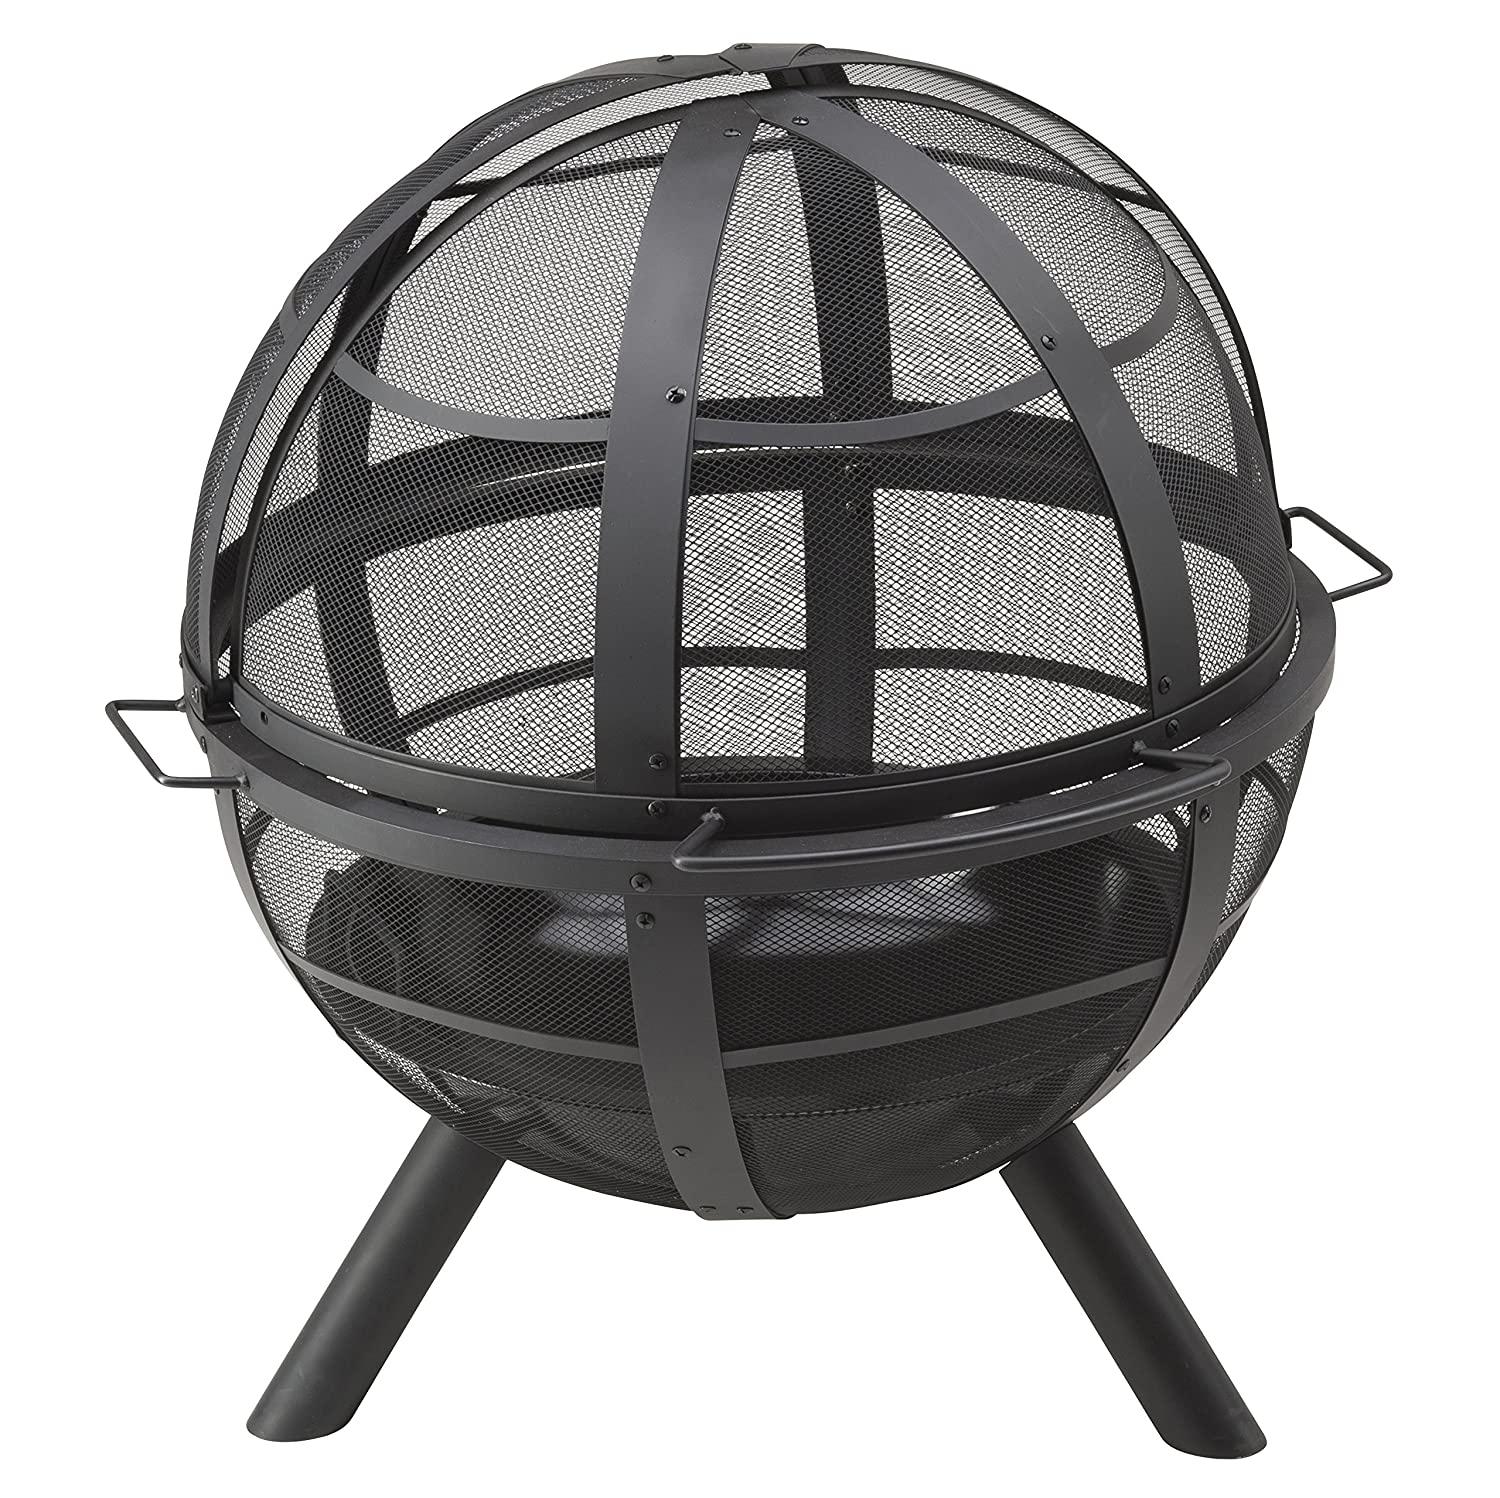 Landmann Ball of Fire Pit 11810